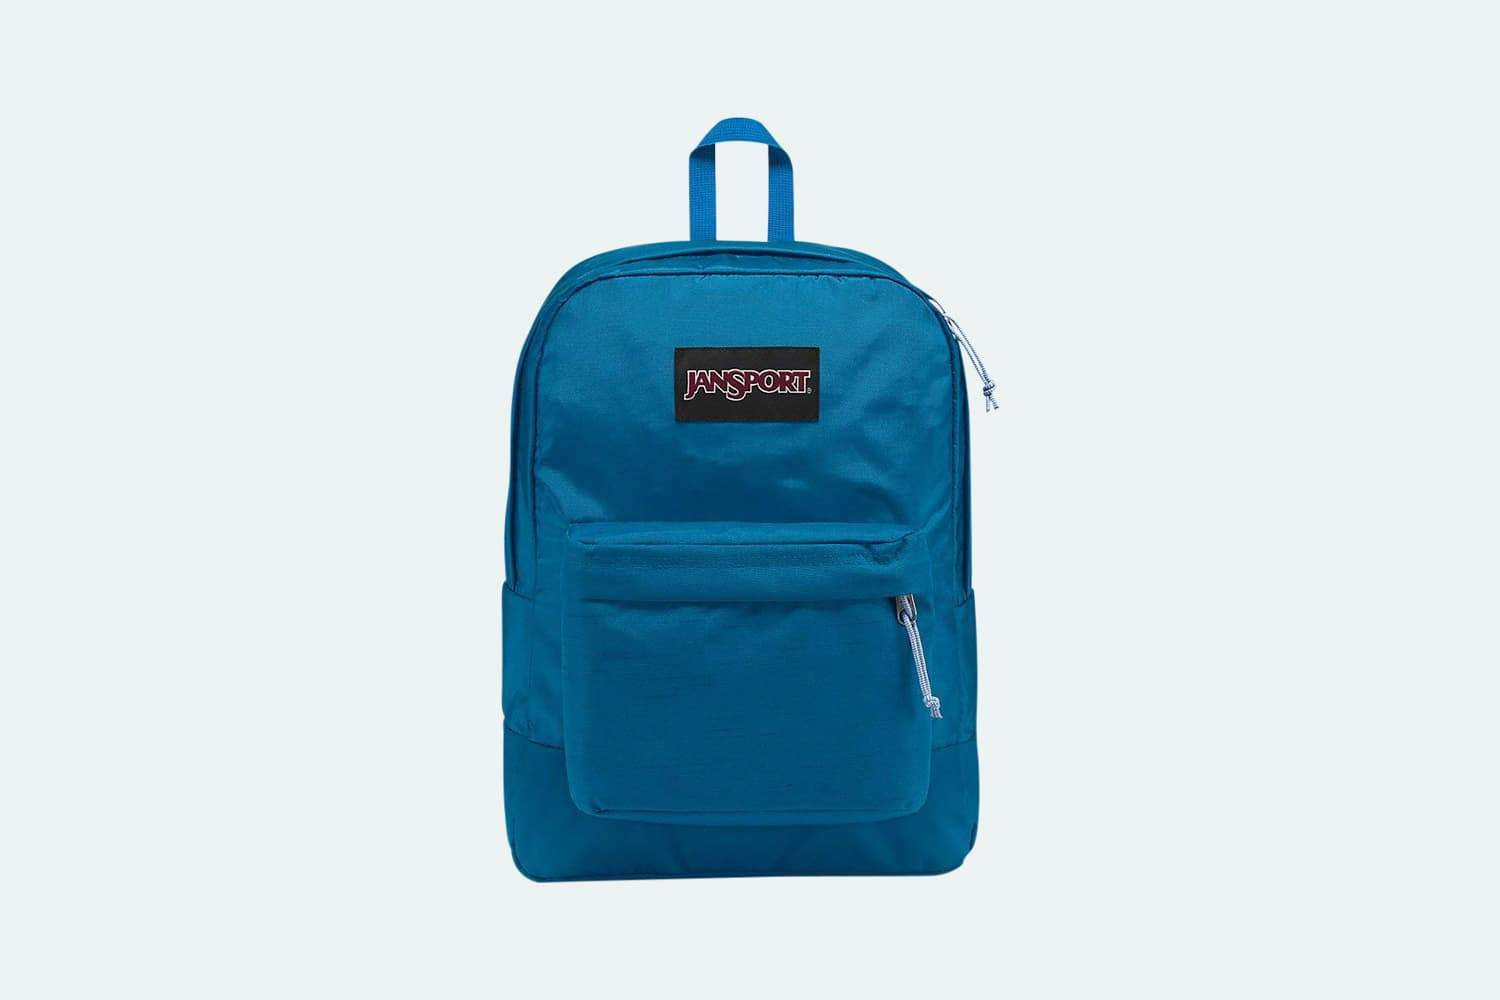 fe3296f241 (Image credit  Jansport)